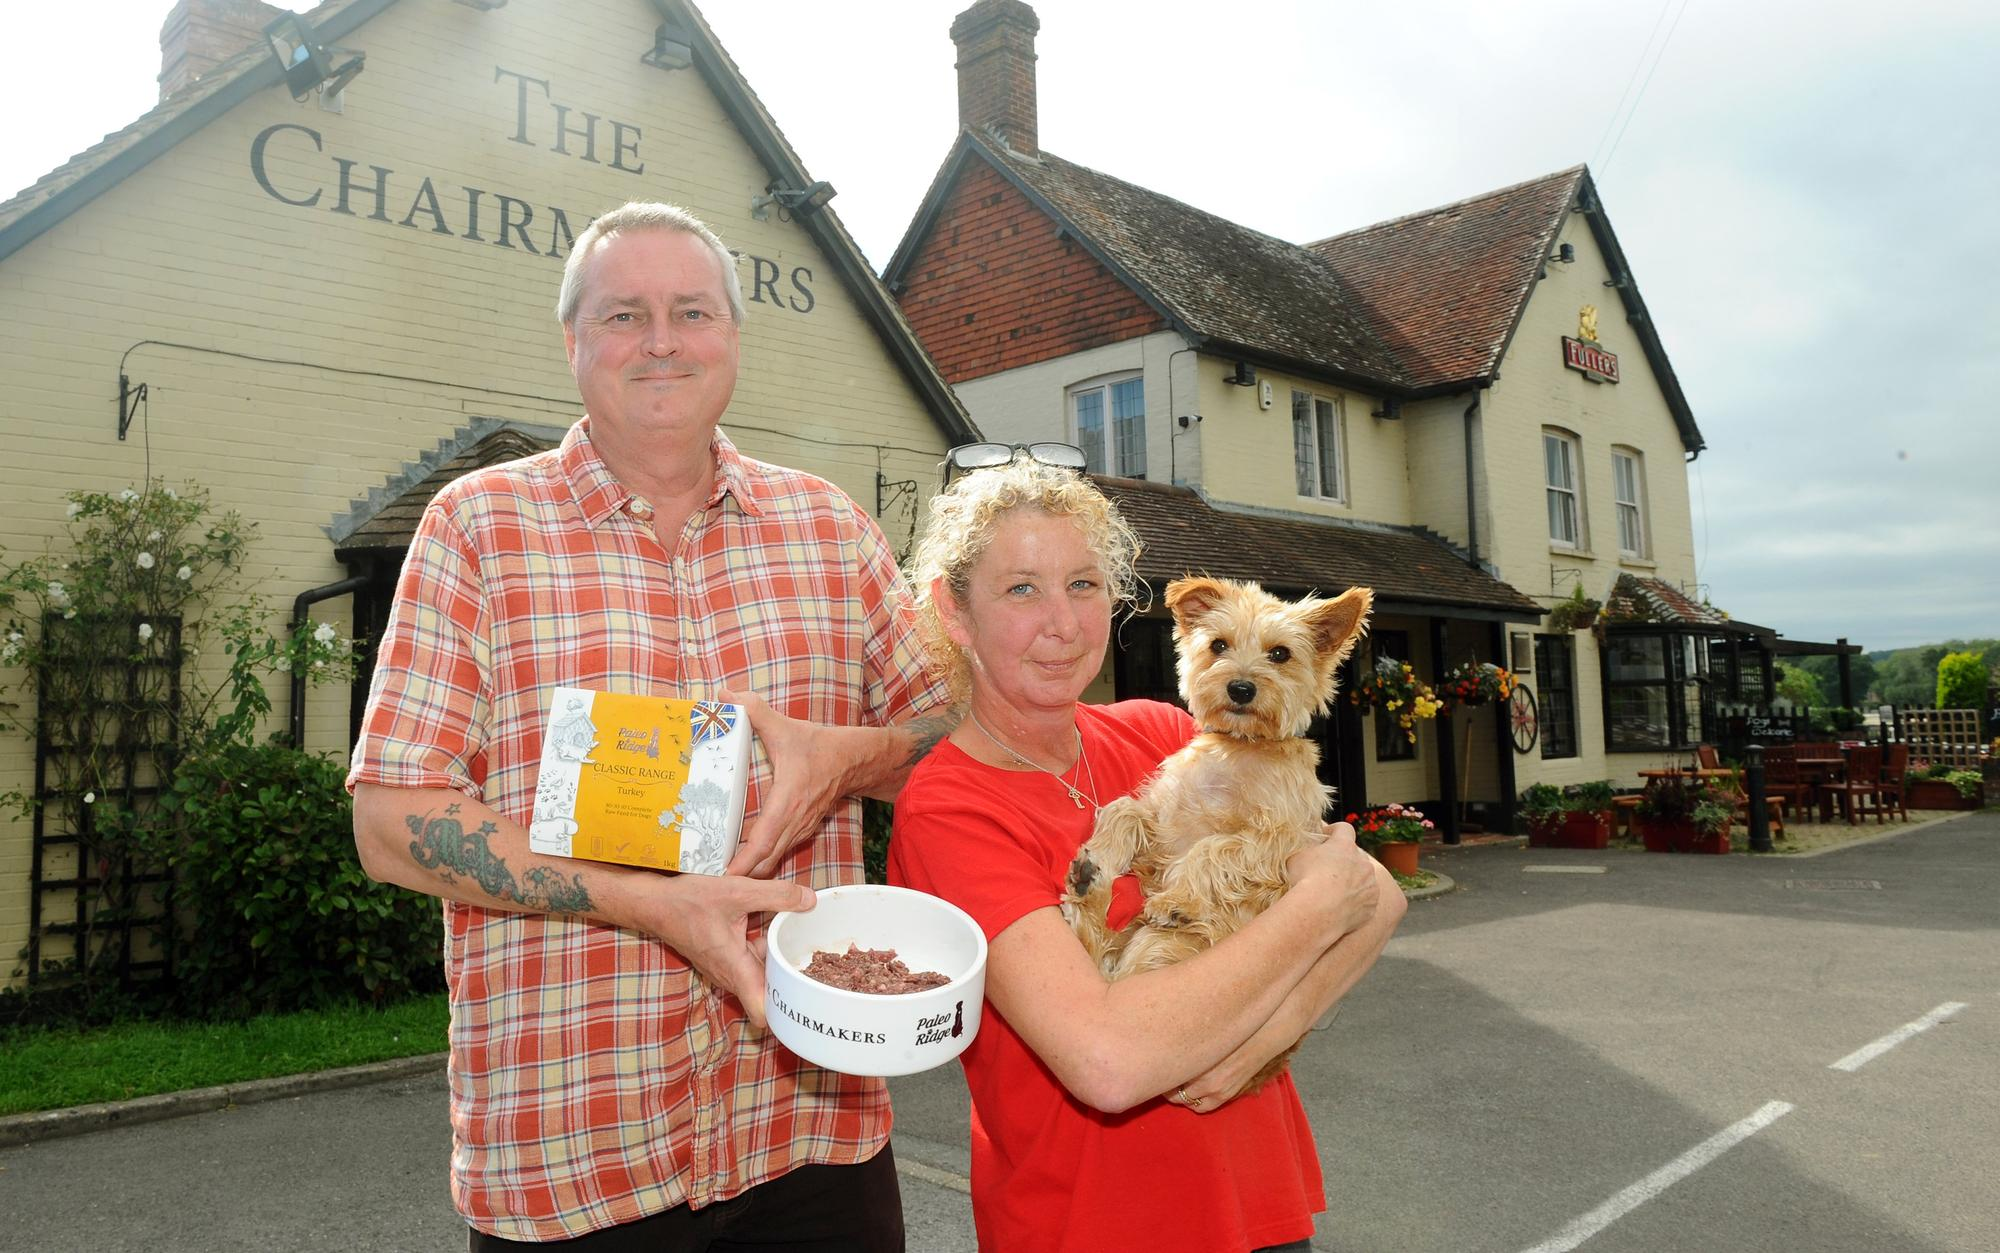 This pub is serving dogs' dinners - and four-legged patrons get their own menu